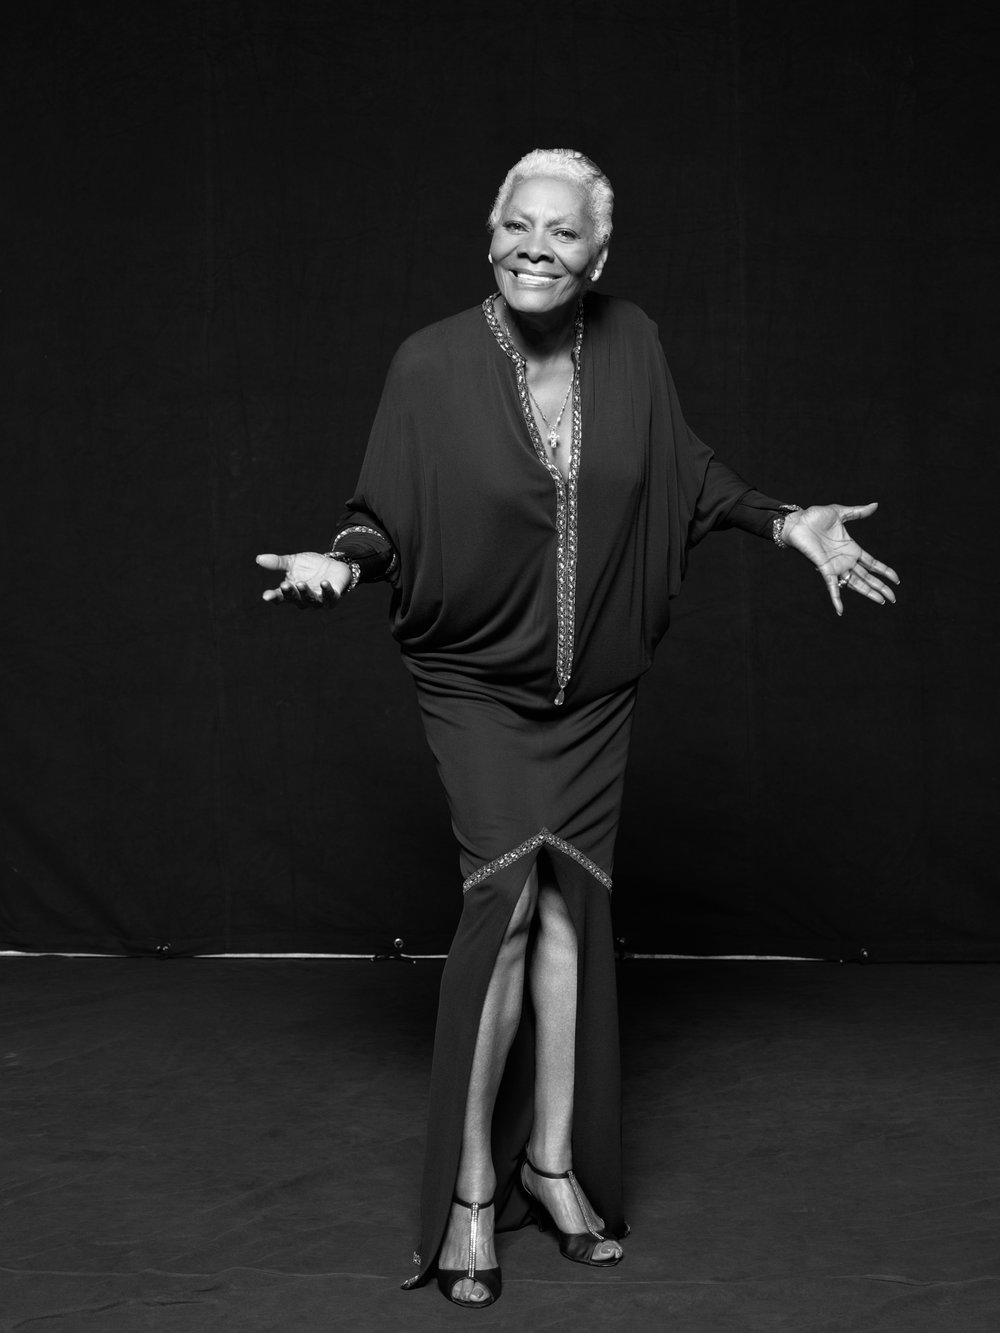 Dionne Warwick, 2017 Harper's Bazaar September Issue